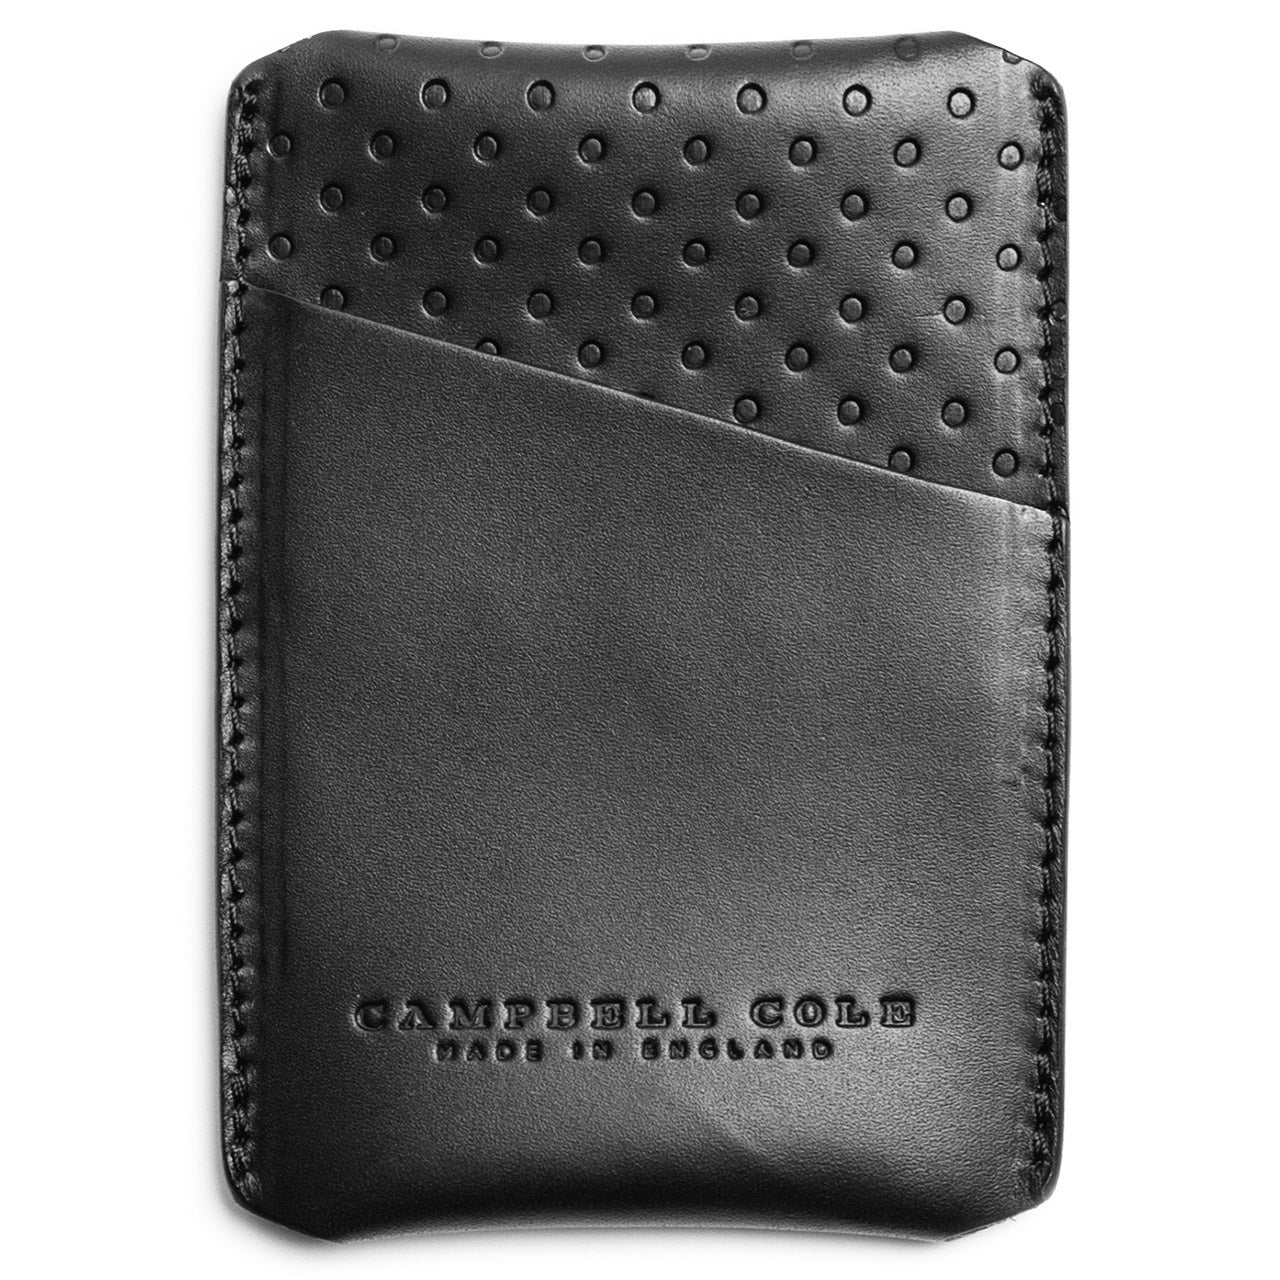 Campbell Cole Card Holder